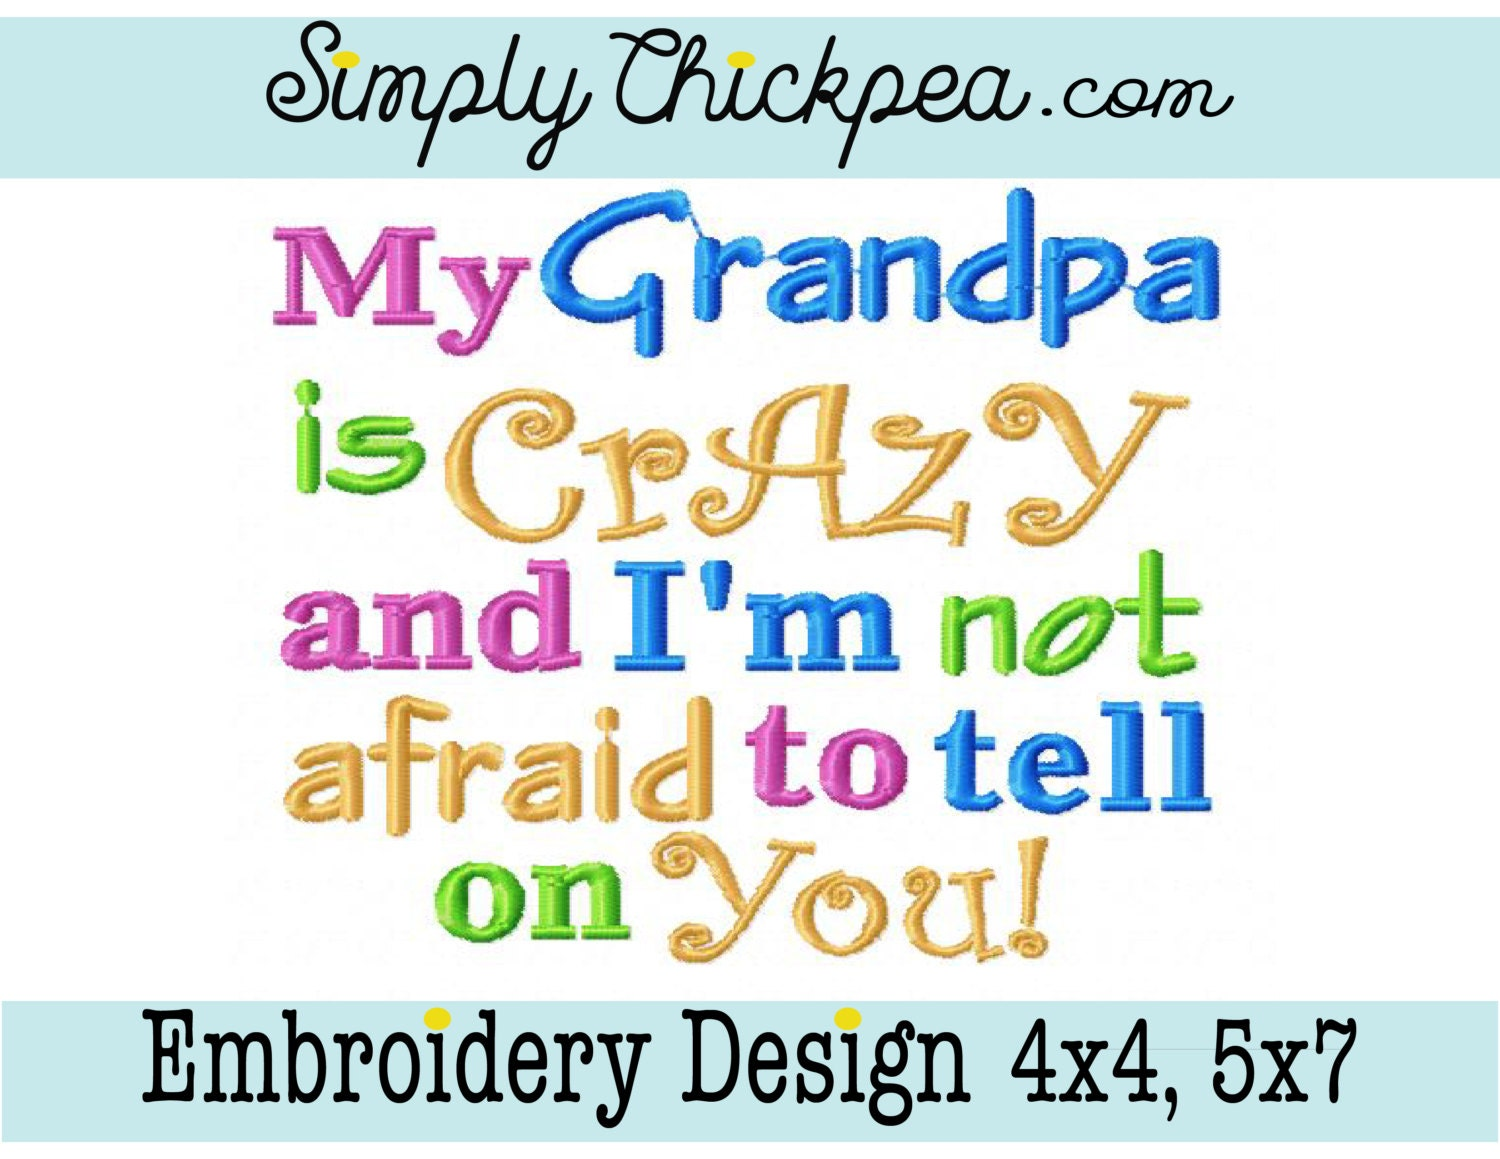 Embroidery design my grandpa is crazy and i m not afraid